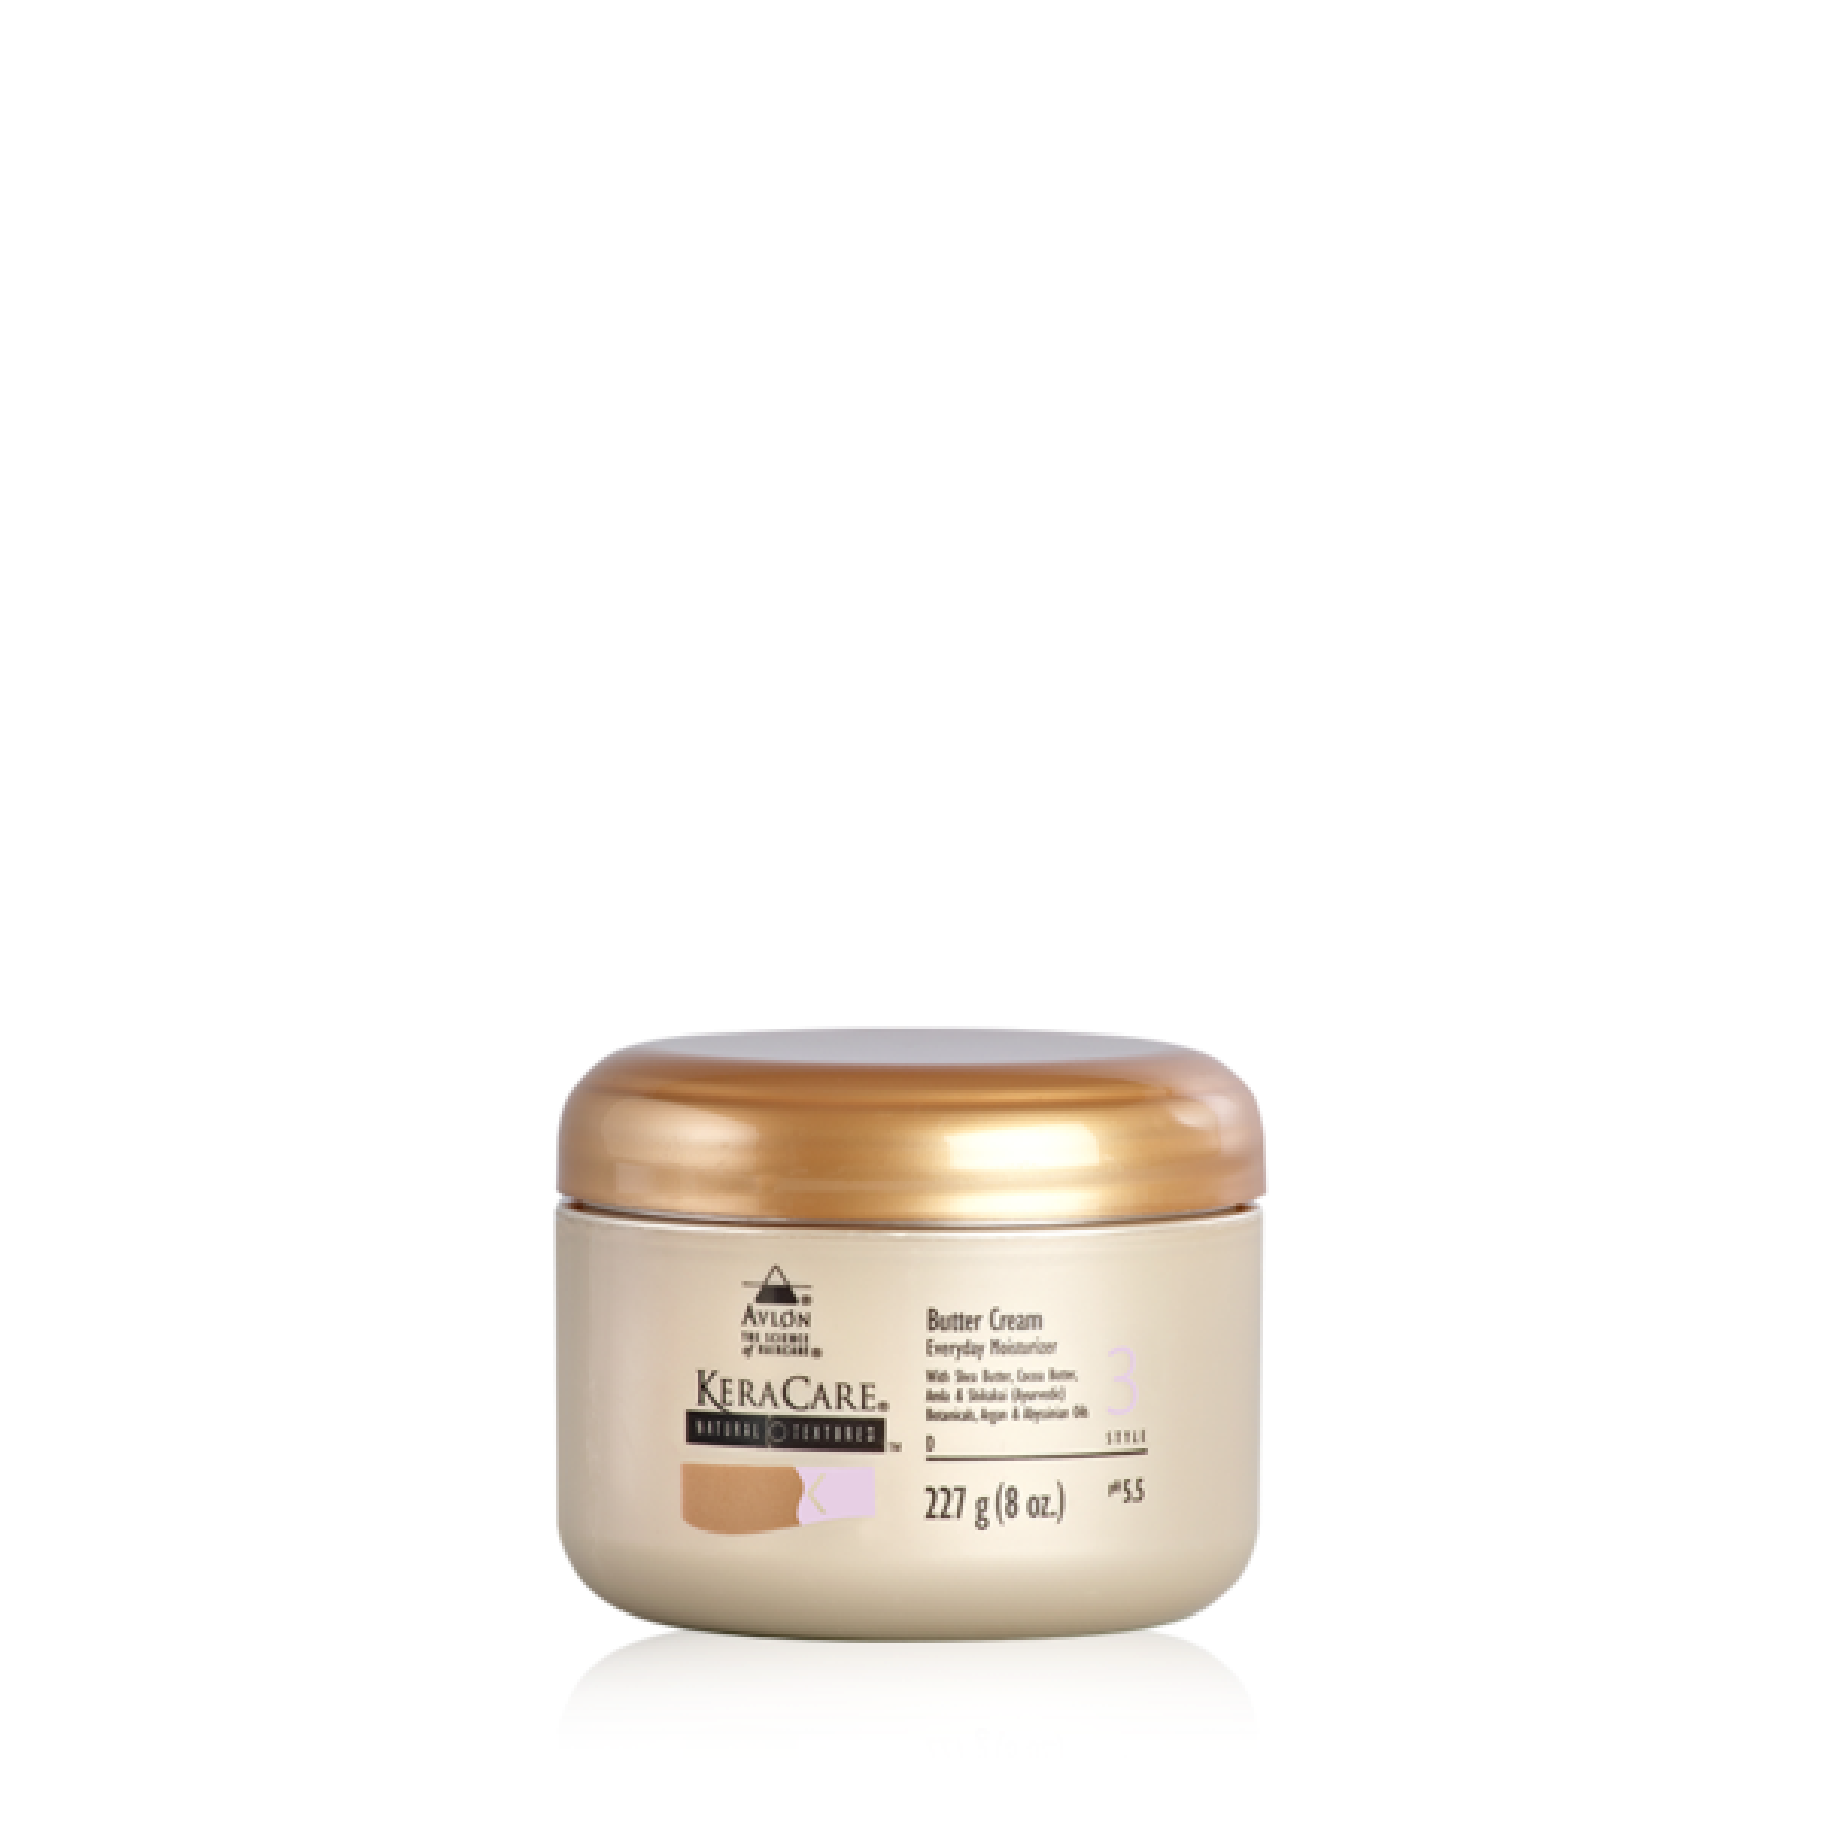 keracare-product-image-Natural-Textures-Butter-Cream_600x